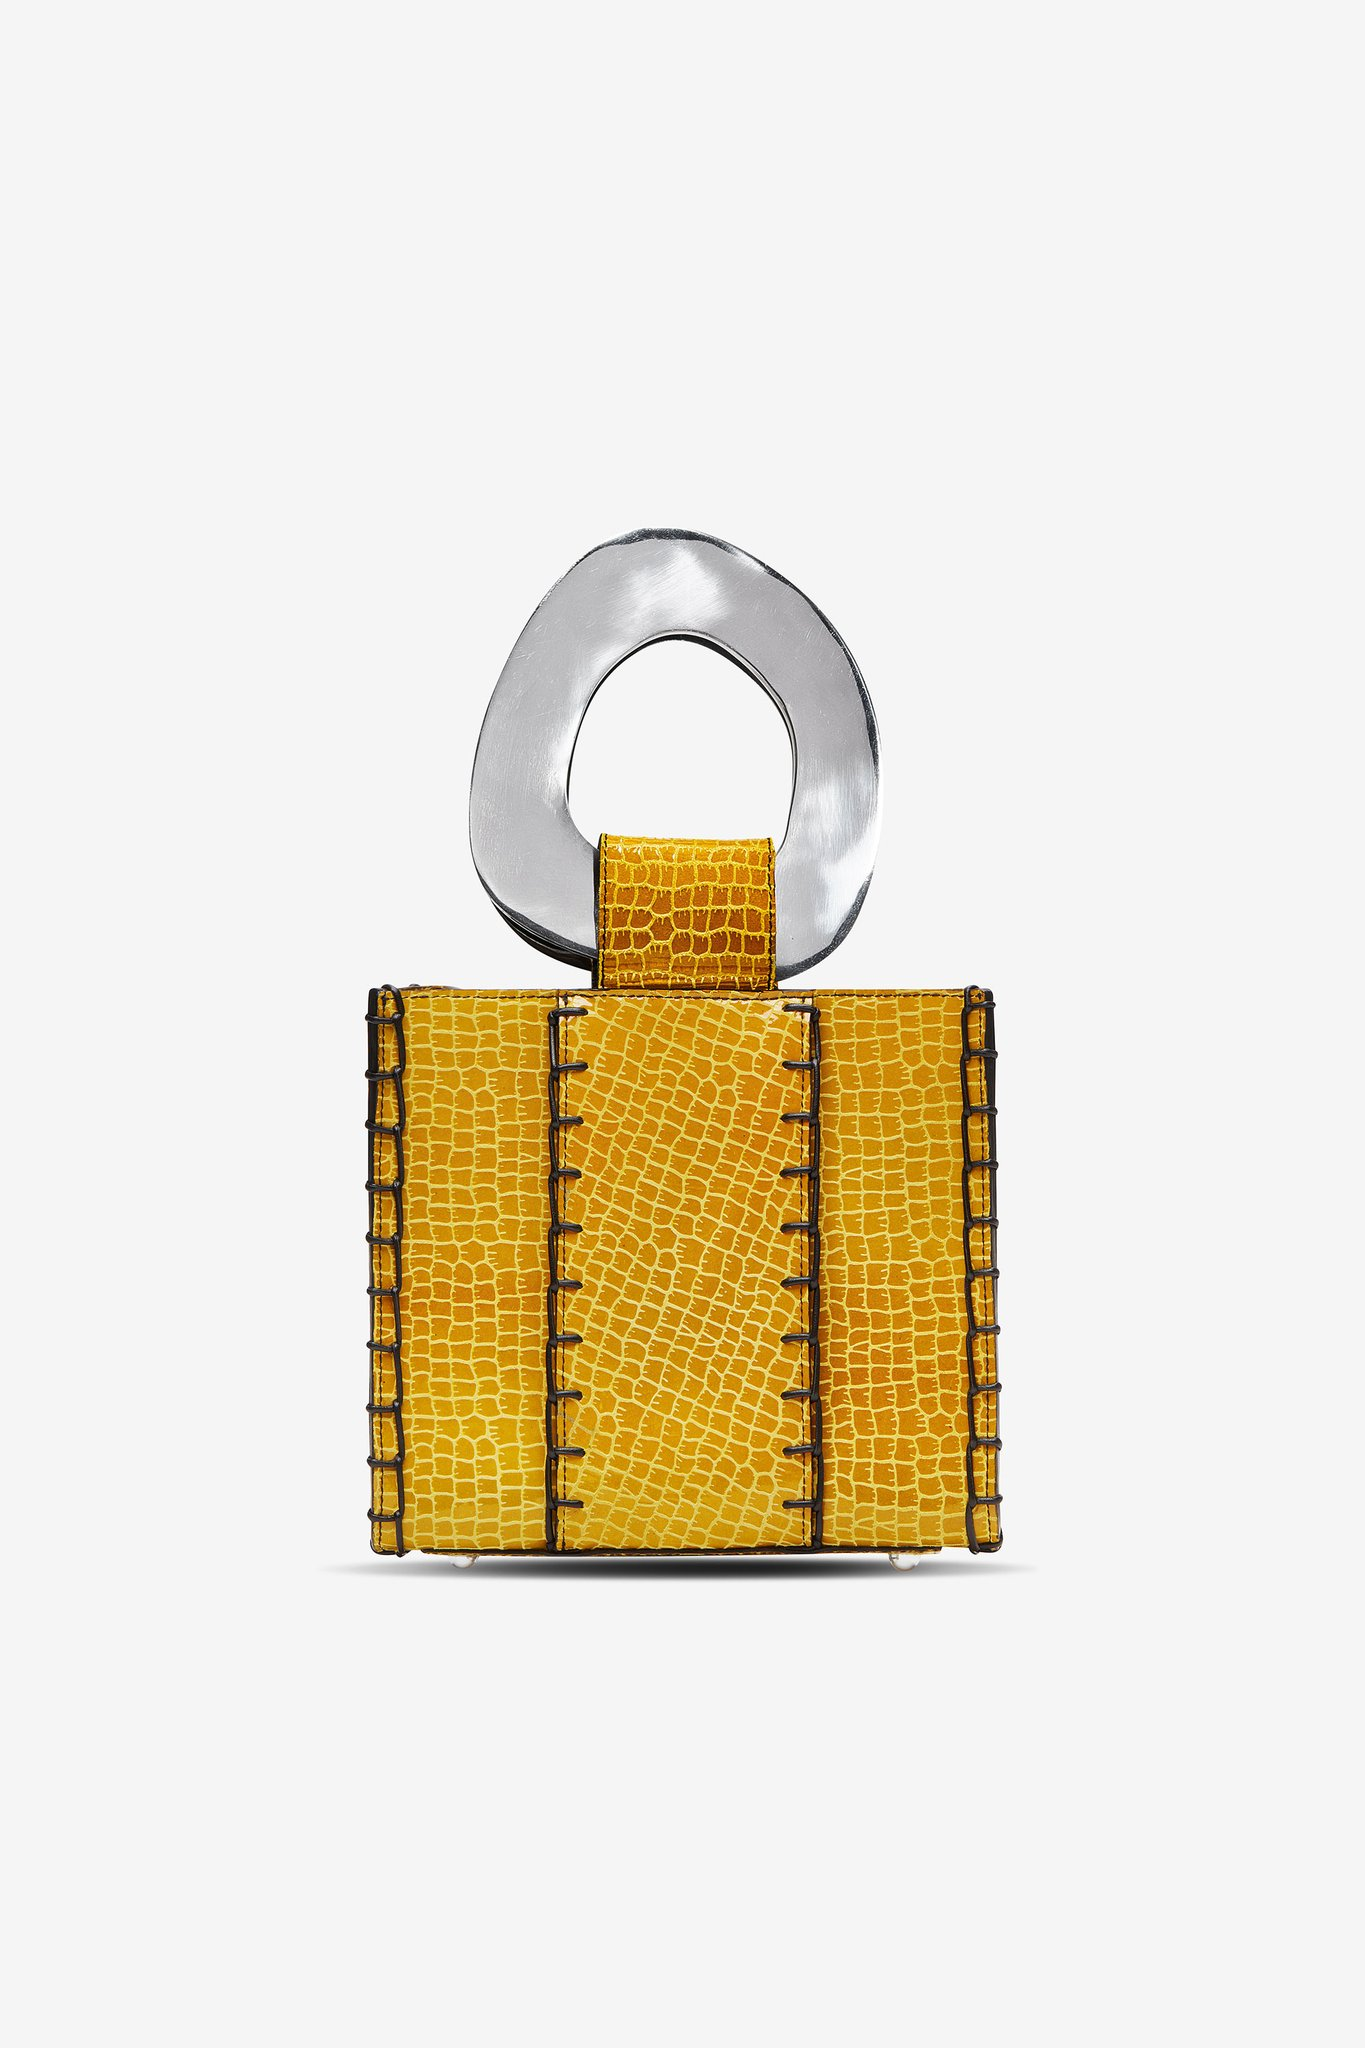 EDUN  is a sustainable high end fashion apparel and accessories brand that makes all its products in Africa from artisans using fair trade methods and guidelines.  www.edun.com